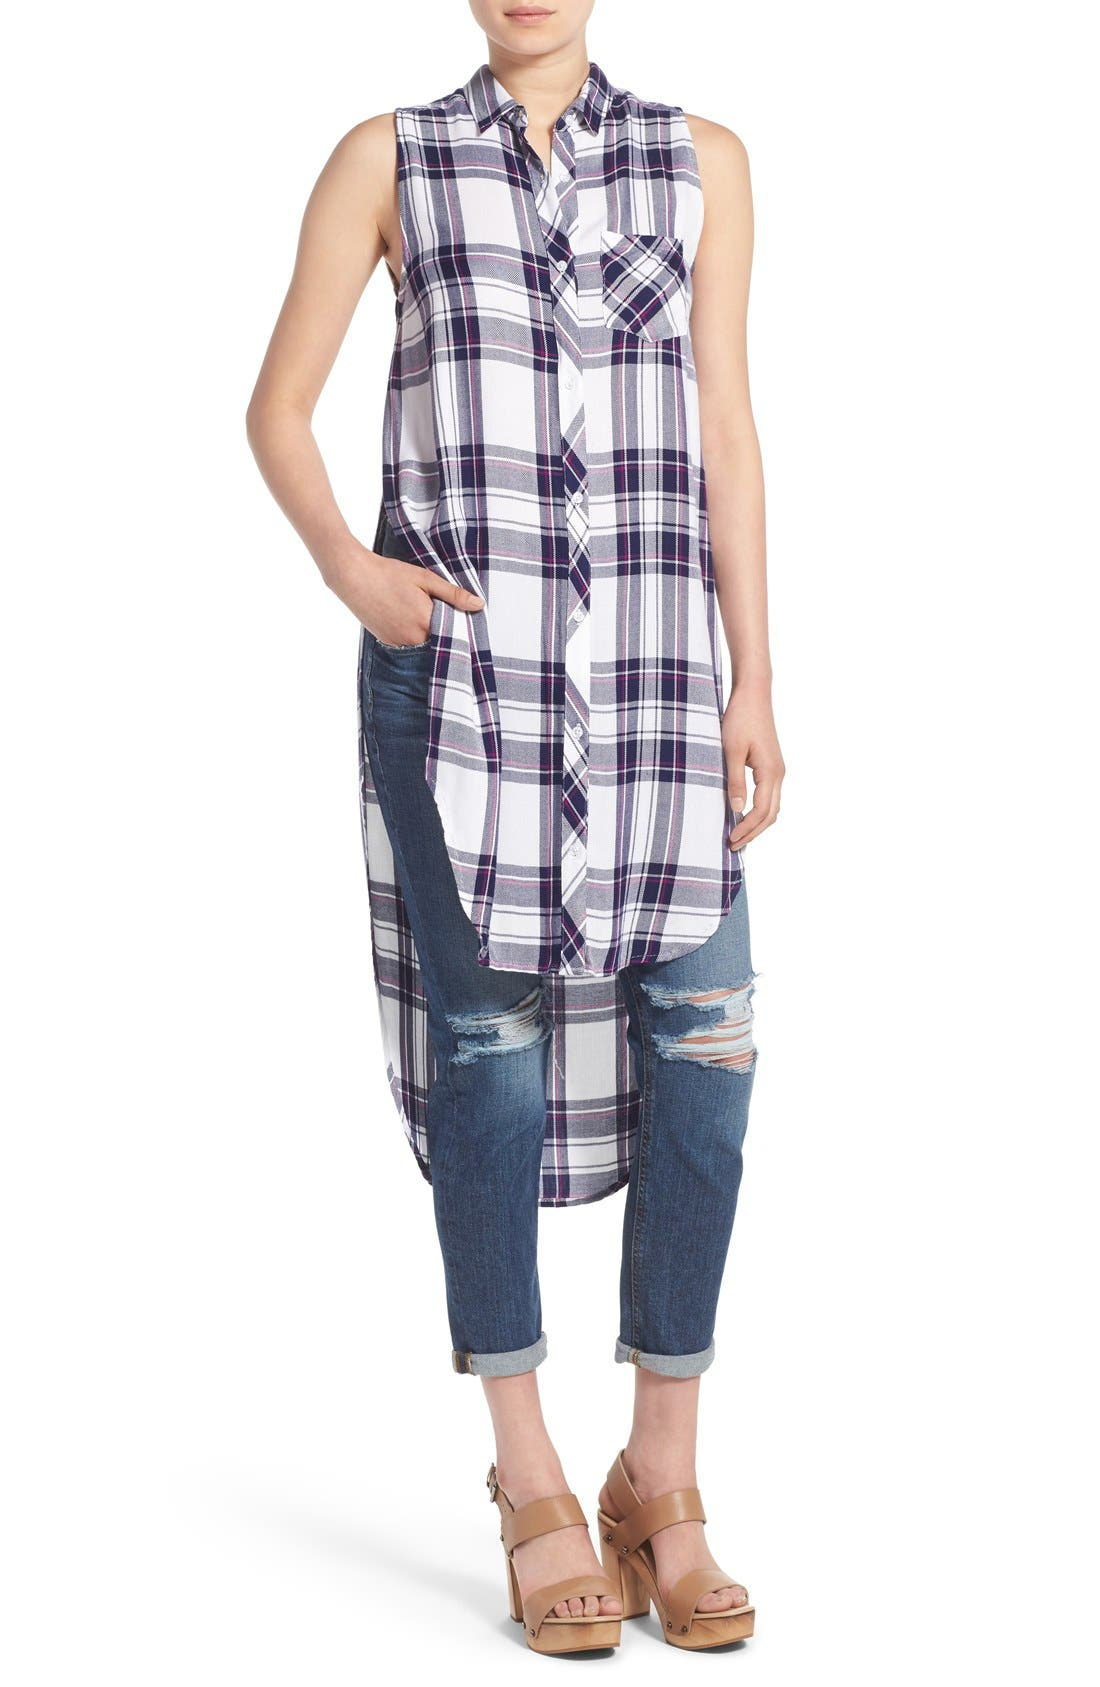 'Jordyn' Sleeveless Plaid Tunic,                             Main thumbnail 1, color,                             White/ Navy/ Orchid